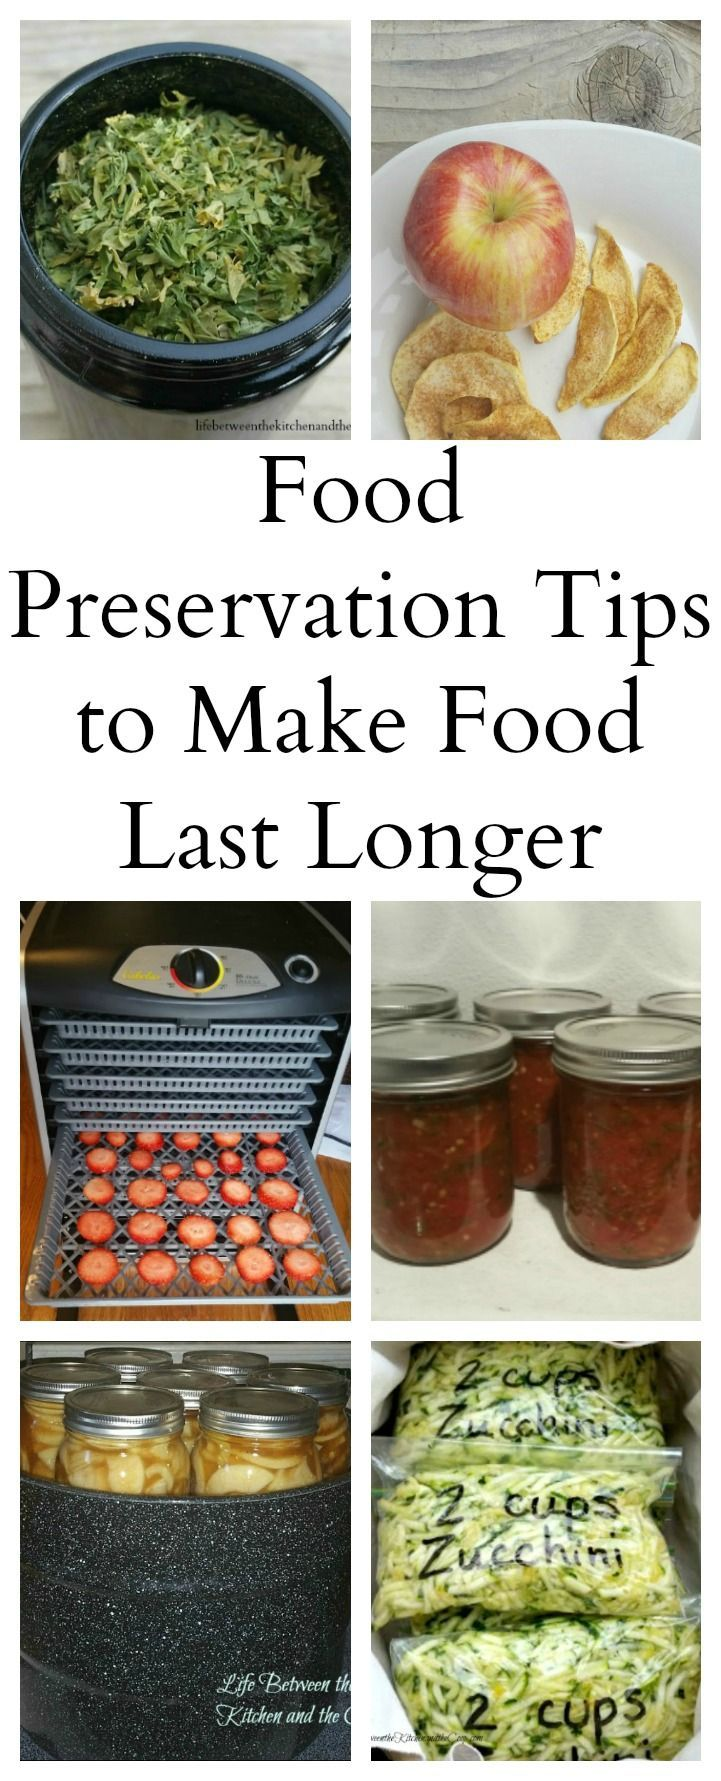 Between produce from the garden and buying in bulk to save money, there is always the challenge of making sure food does not go bad before you can use it. I figure you probably deal with that challenge, too, so I want to share some tips with you! Click through for some great ideas, whether you are dehydrating, canning, freezing, or just finding the right containers to prolong food life!